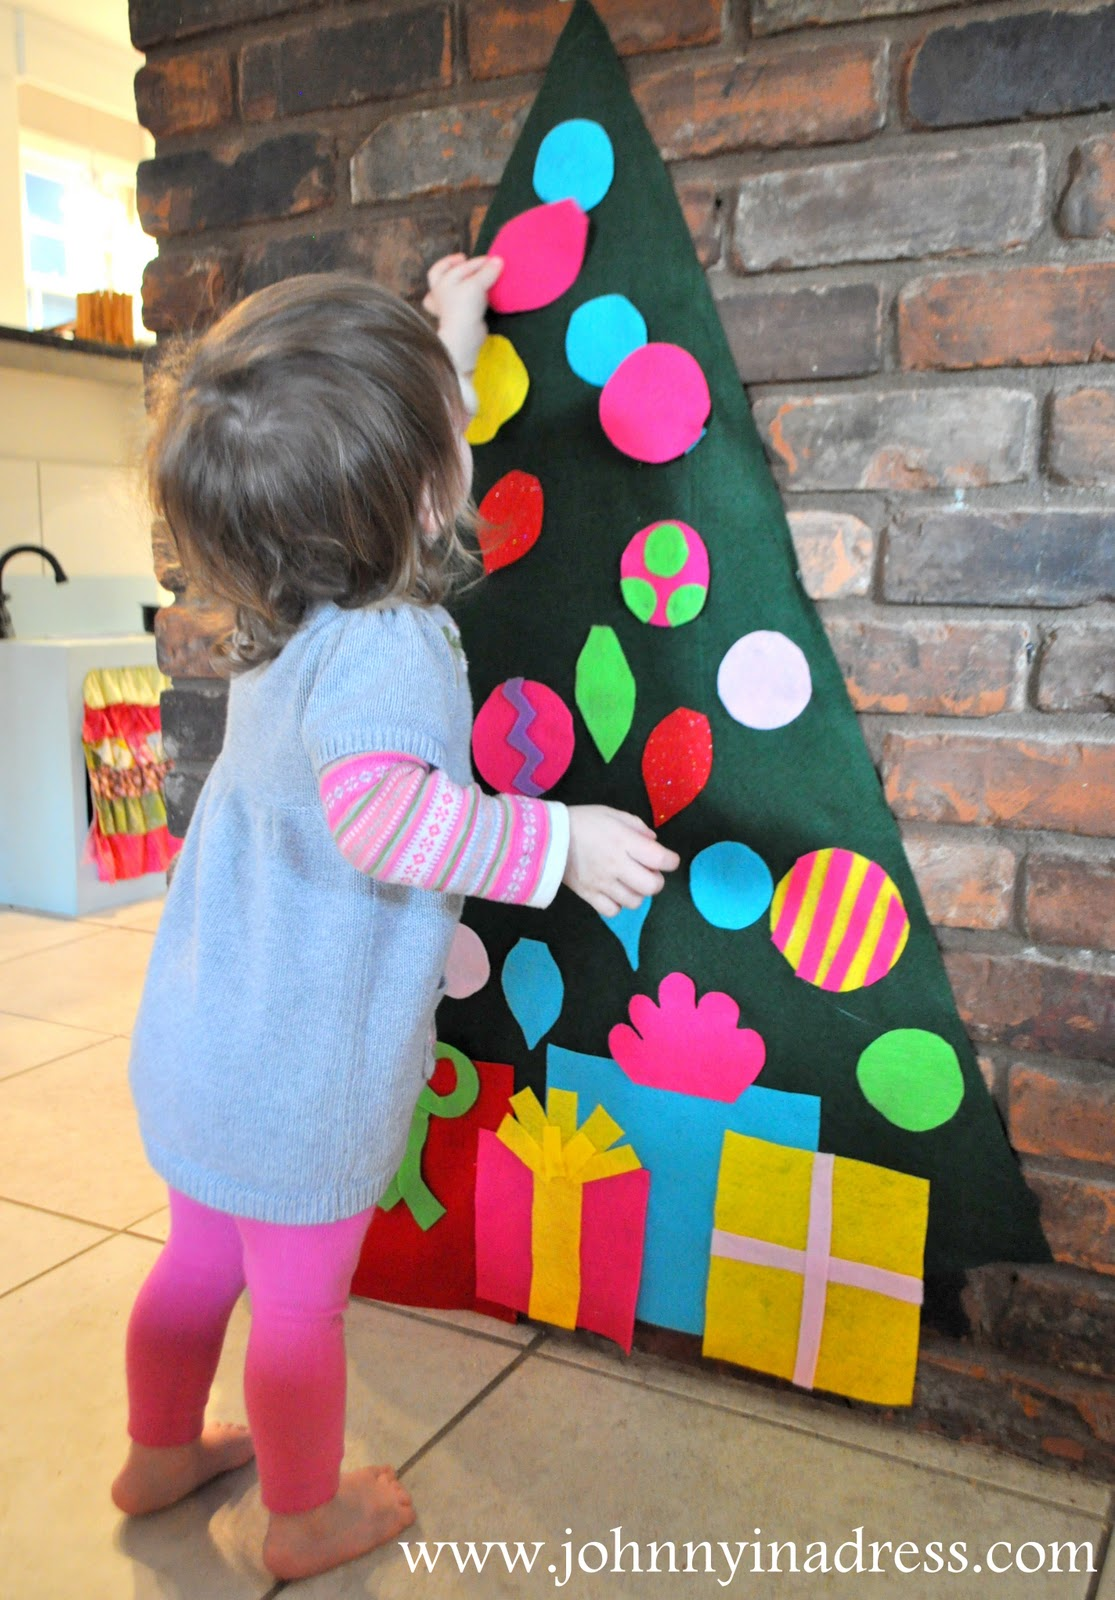 Ucreate with Kids: Christmas Tree Craft: Felt Christmas Tree…great for pre